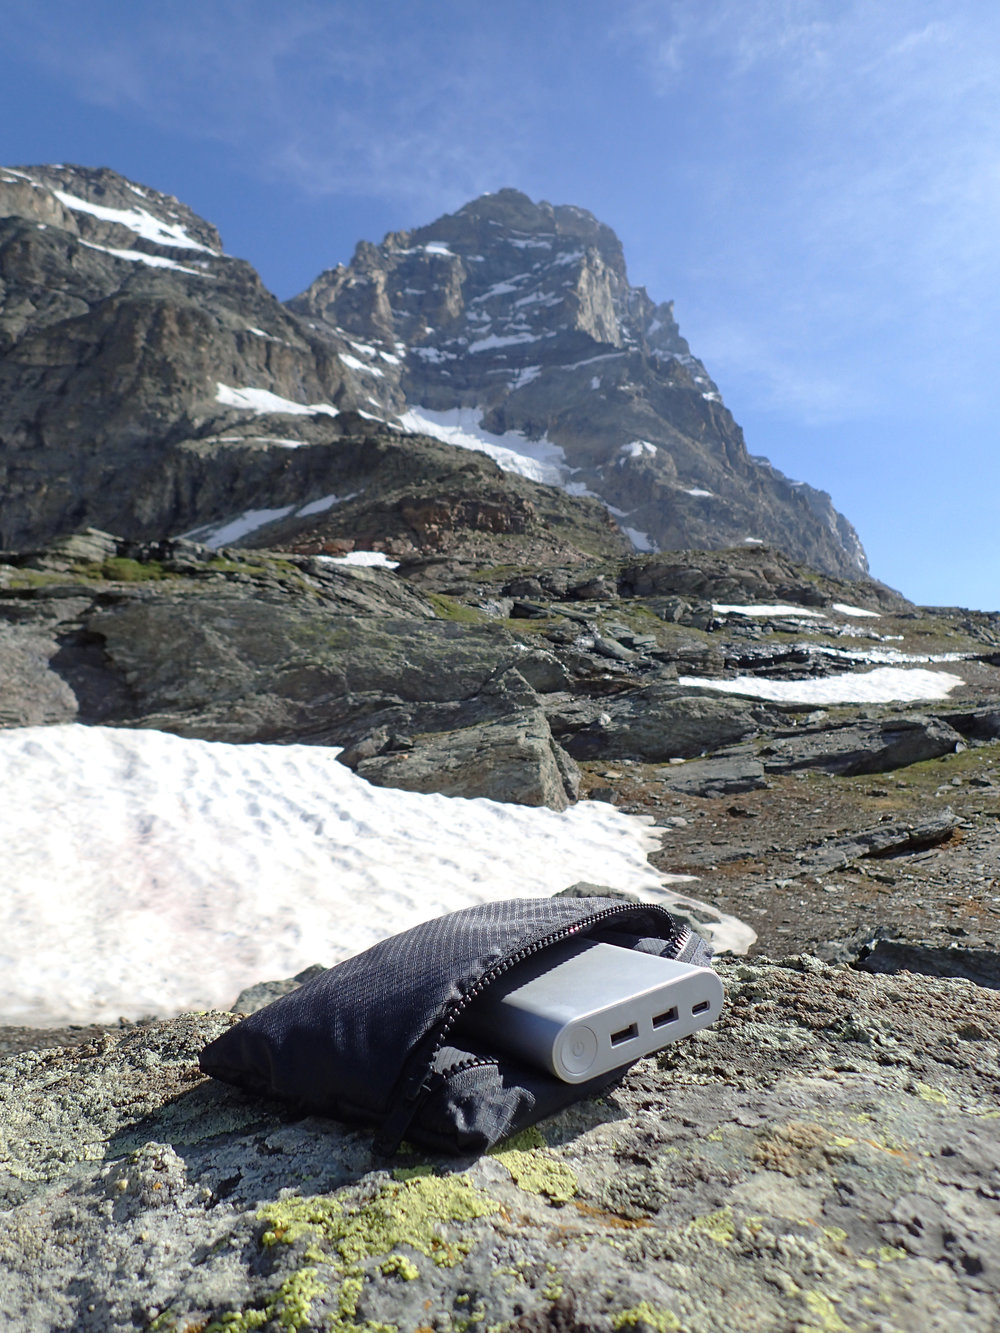 An early stage prototype soaking in the High Alps of Switzerland.